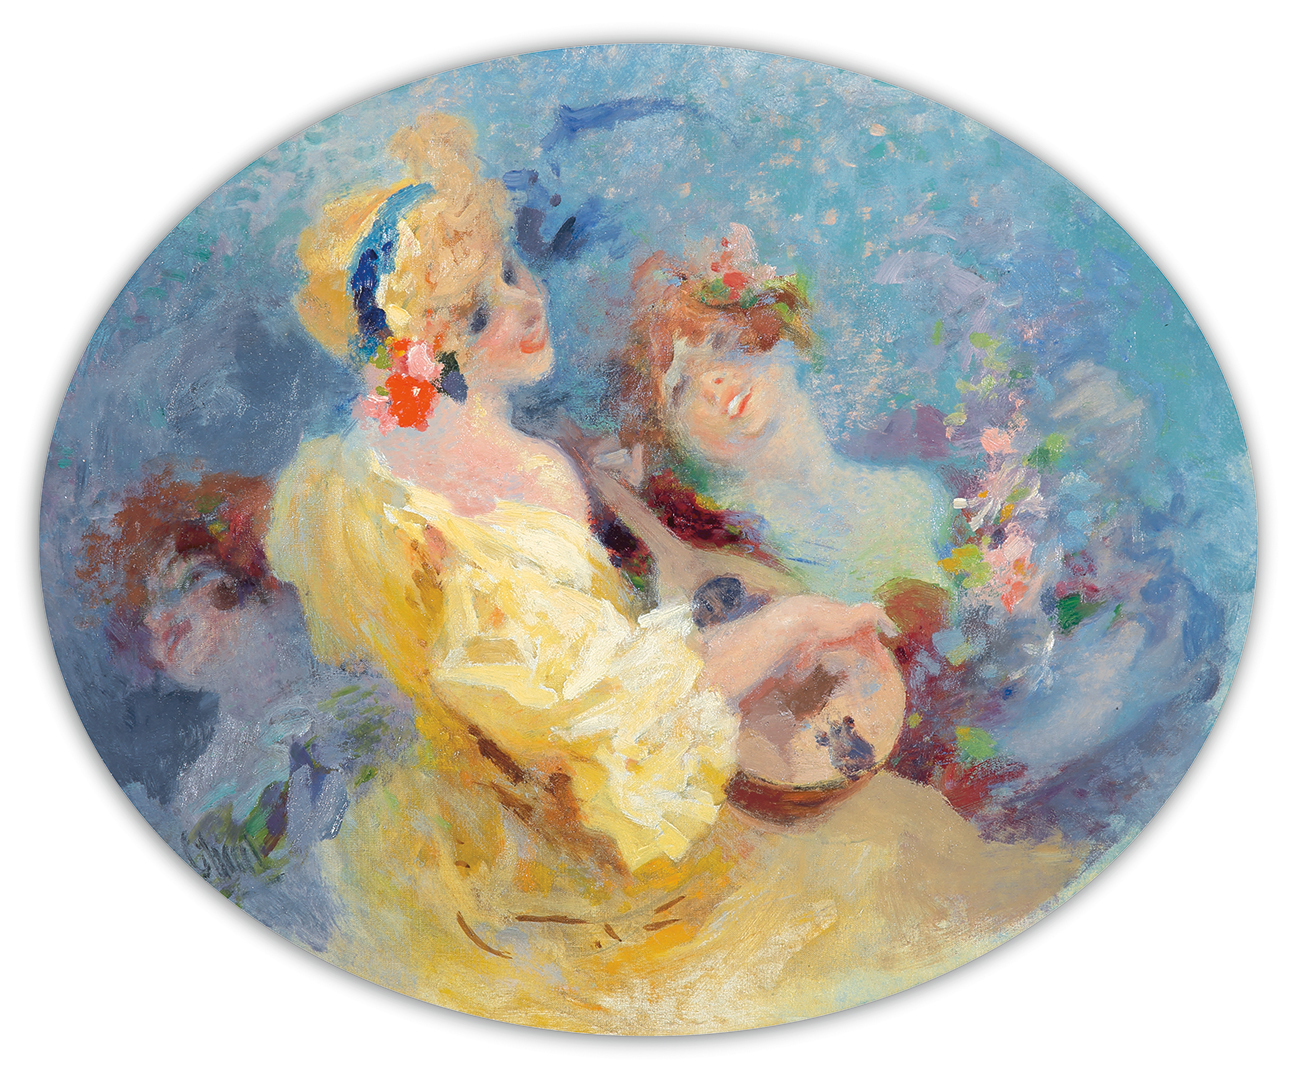 237. La Musicienne : Signed Oil Painting. Ca. 1902. ($14,400)